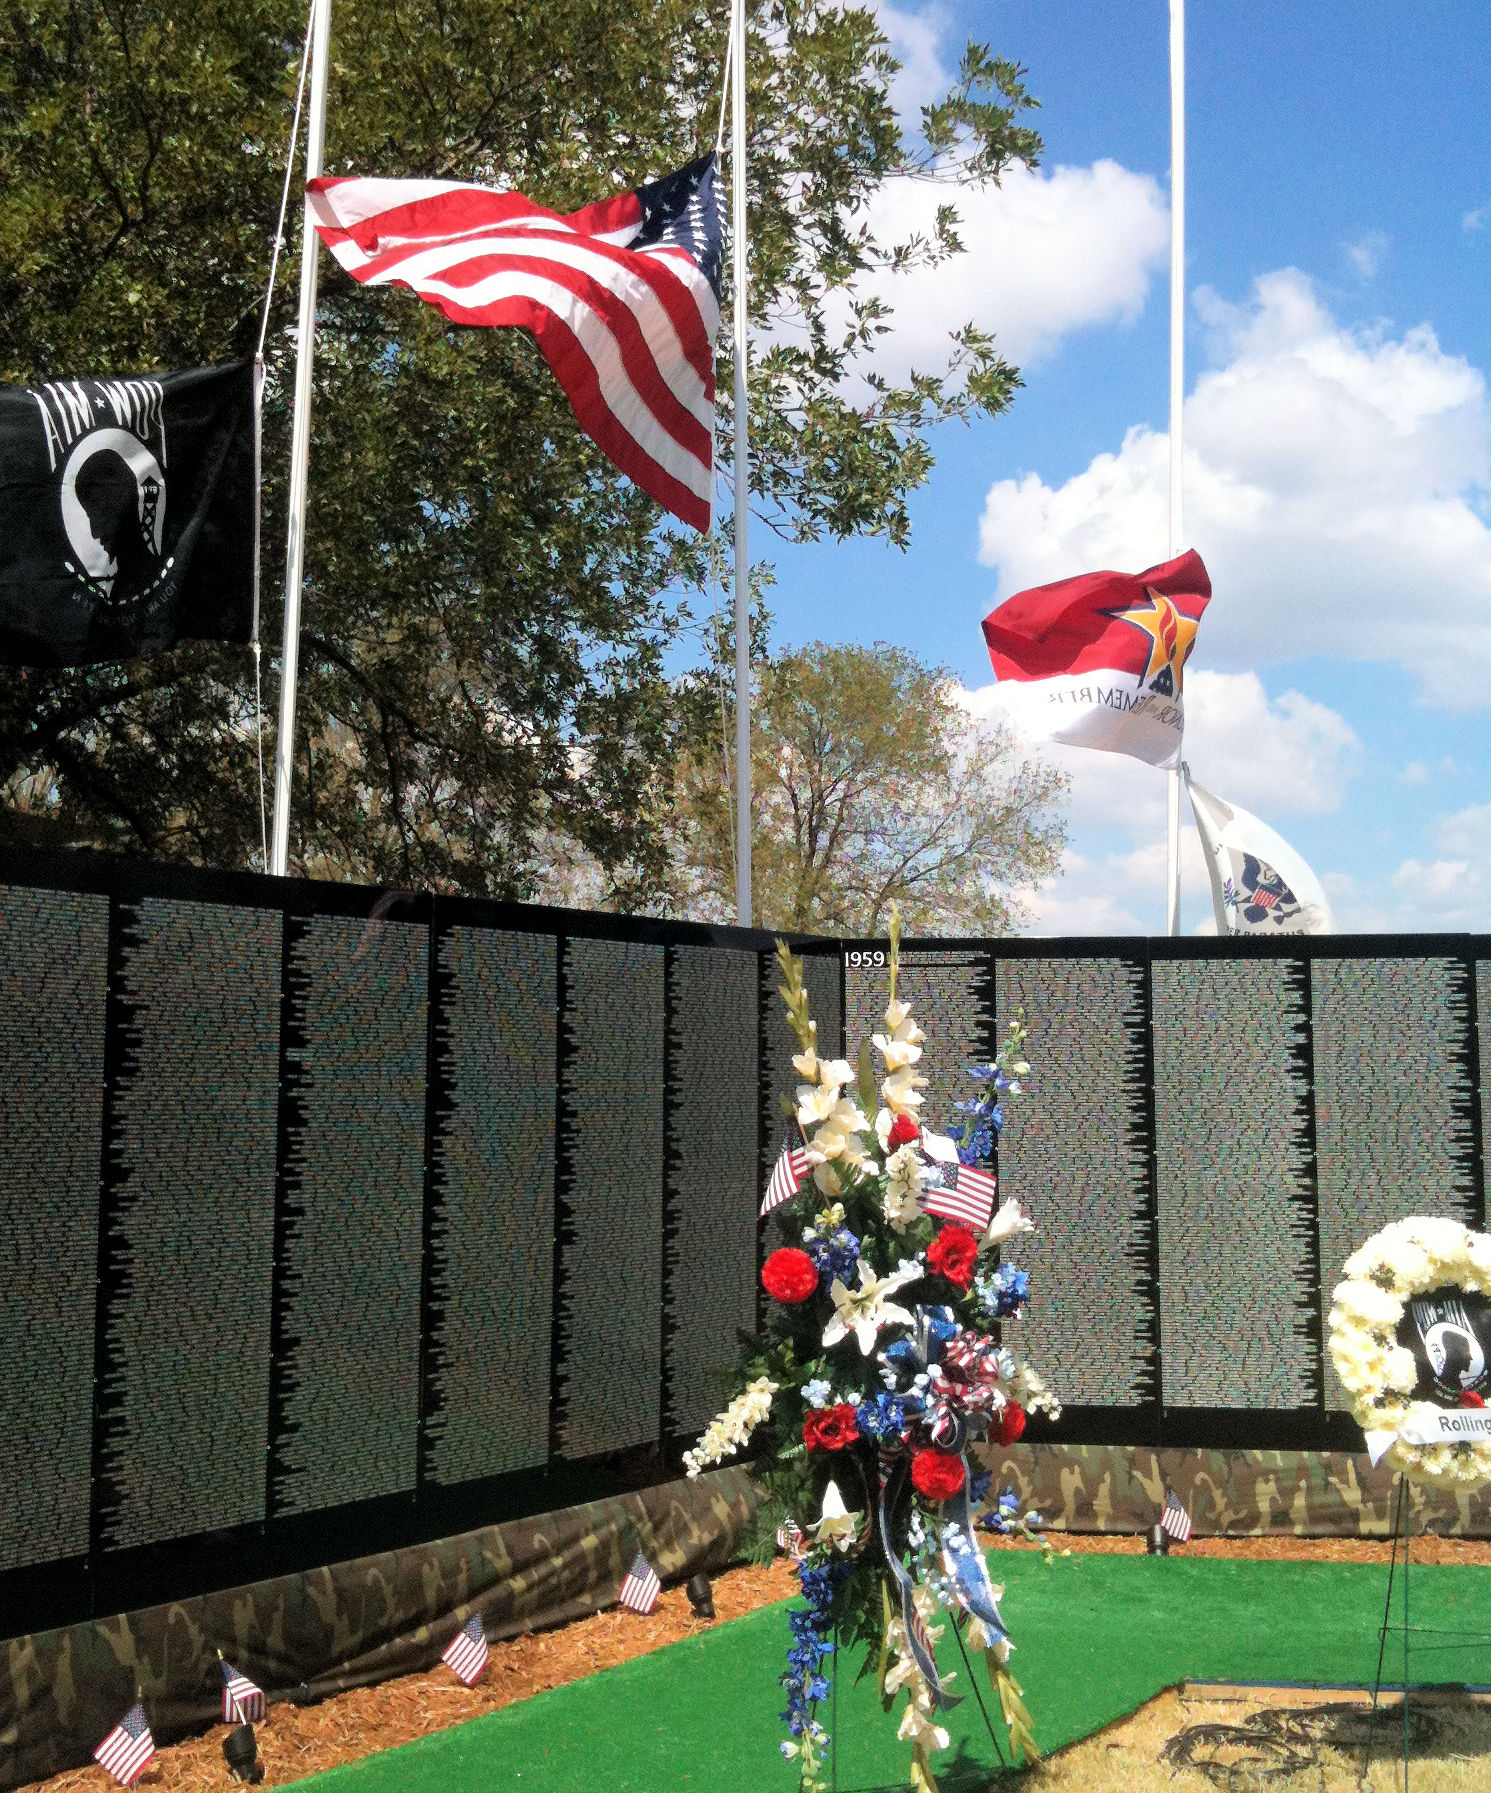 a replica of the Vietnam Memorial Wall with an American flag and a wreath of red, white, and blue flowers